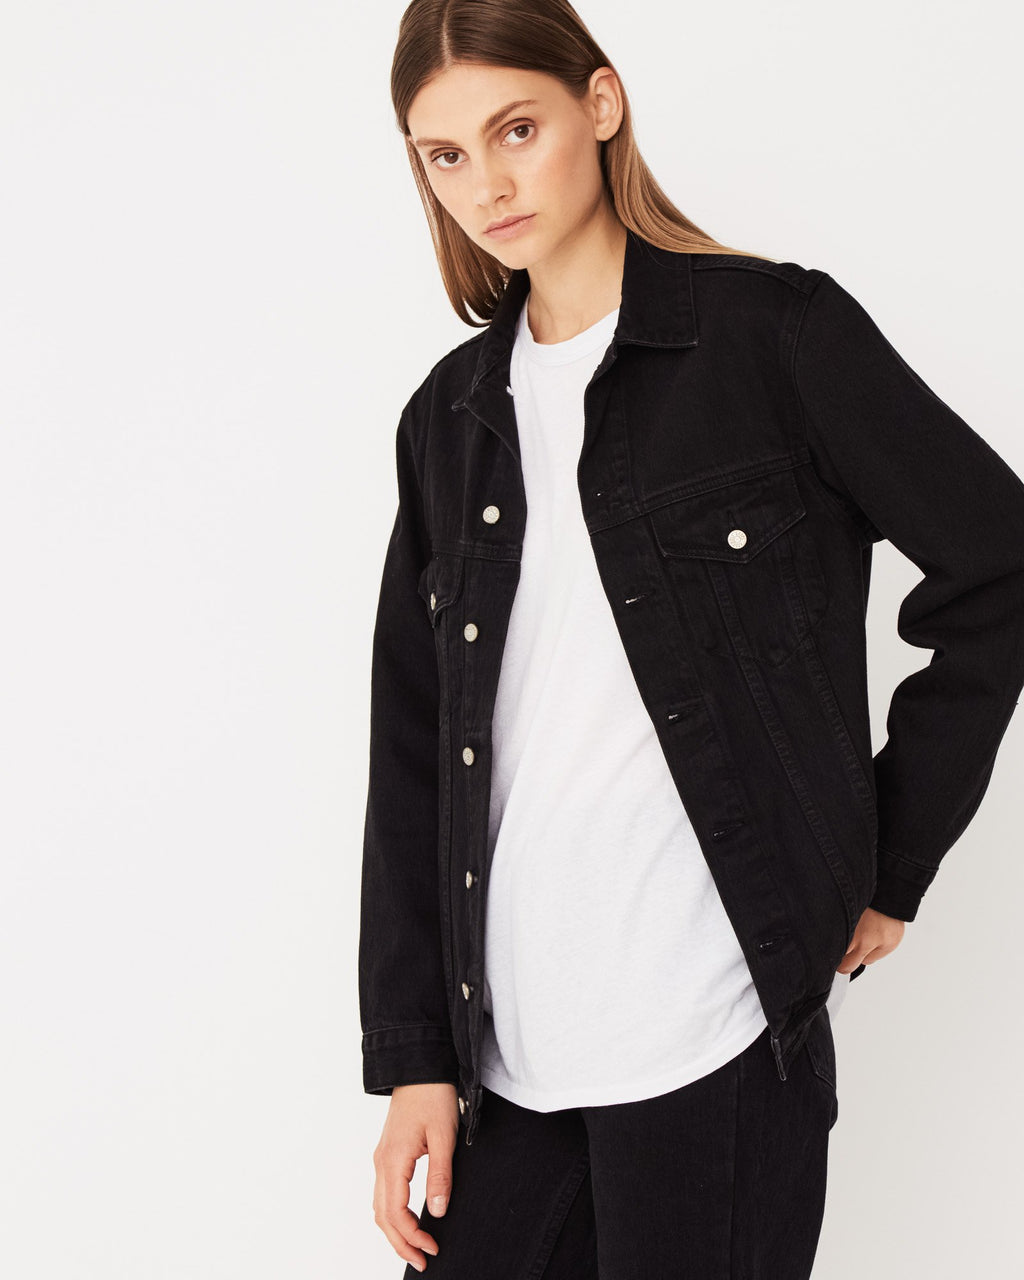 Ledger Jacket / Worn Black